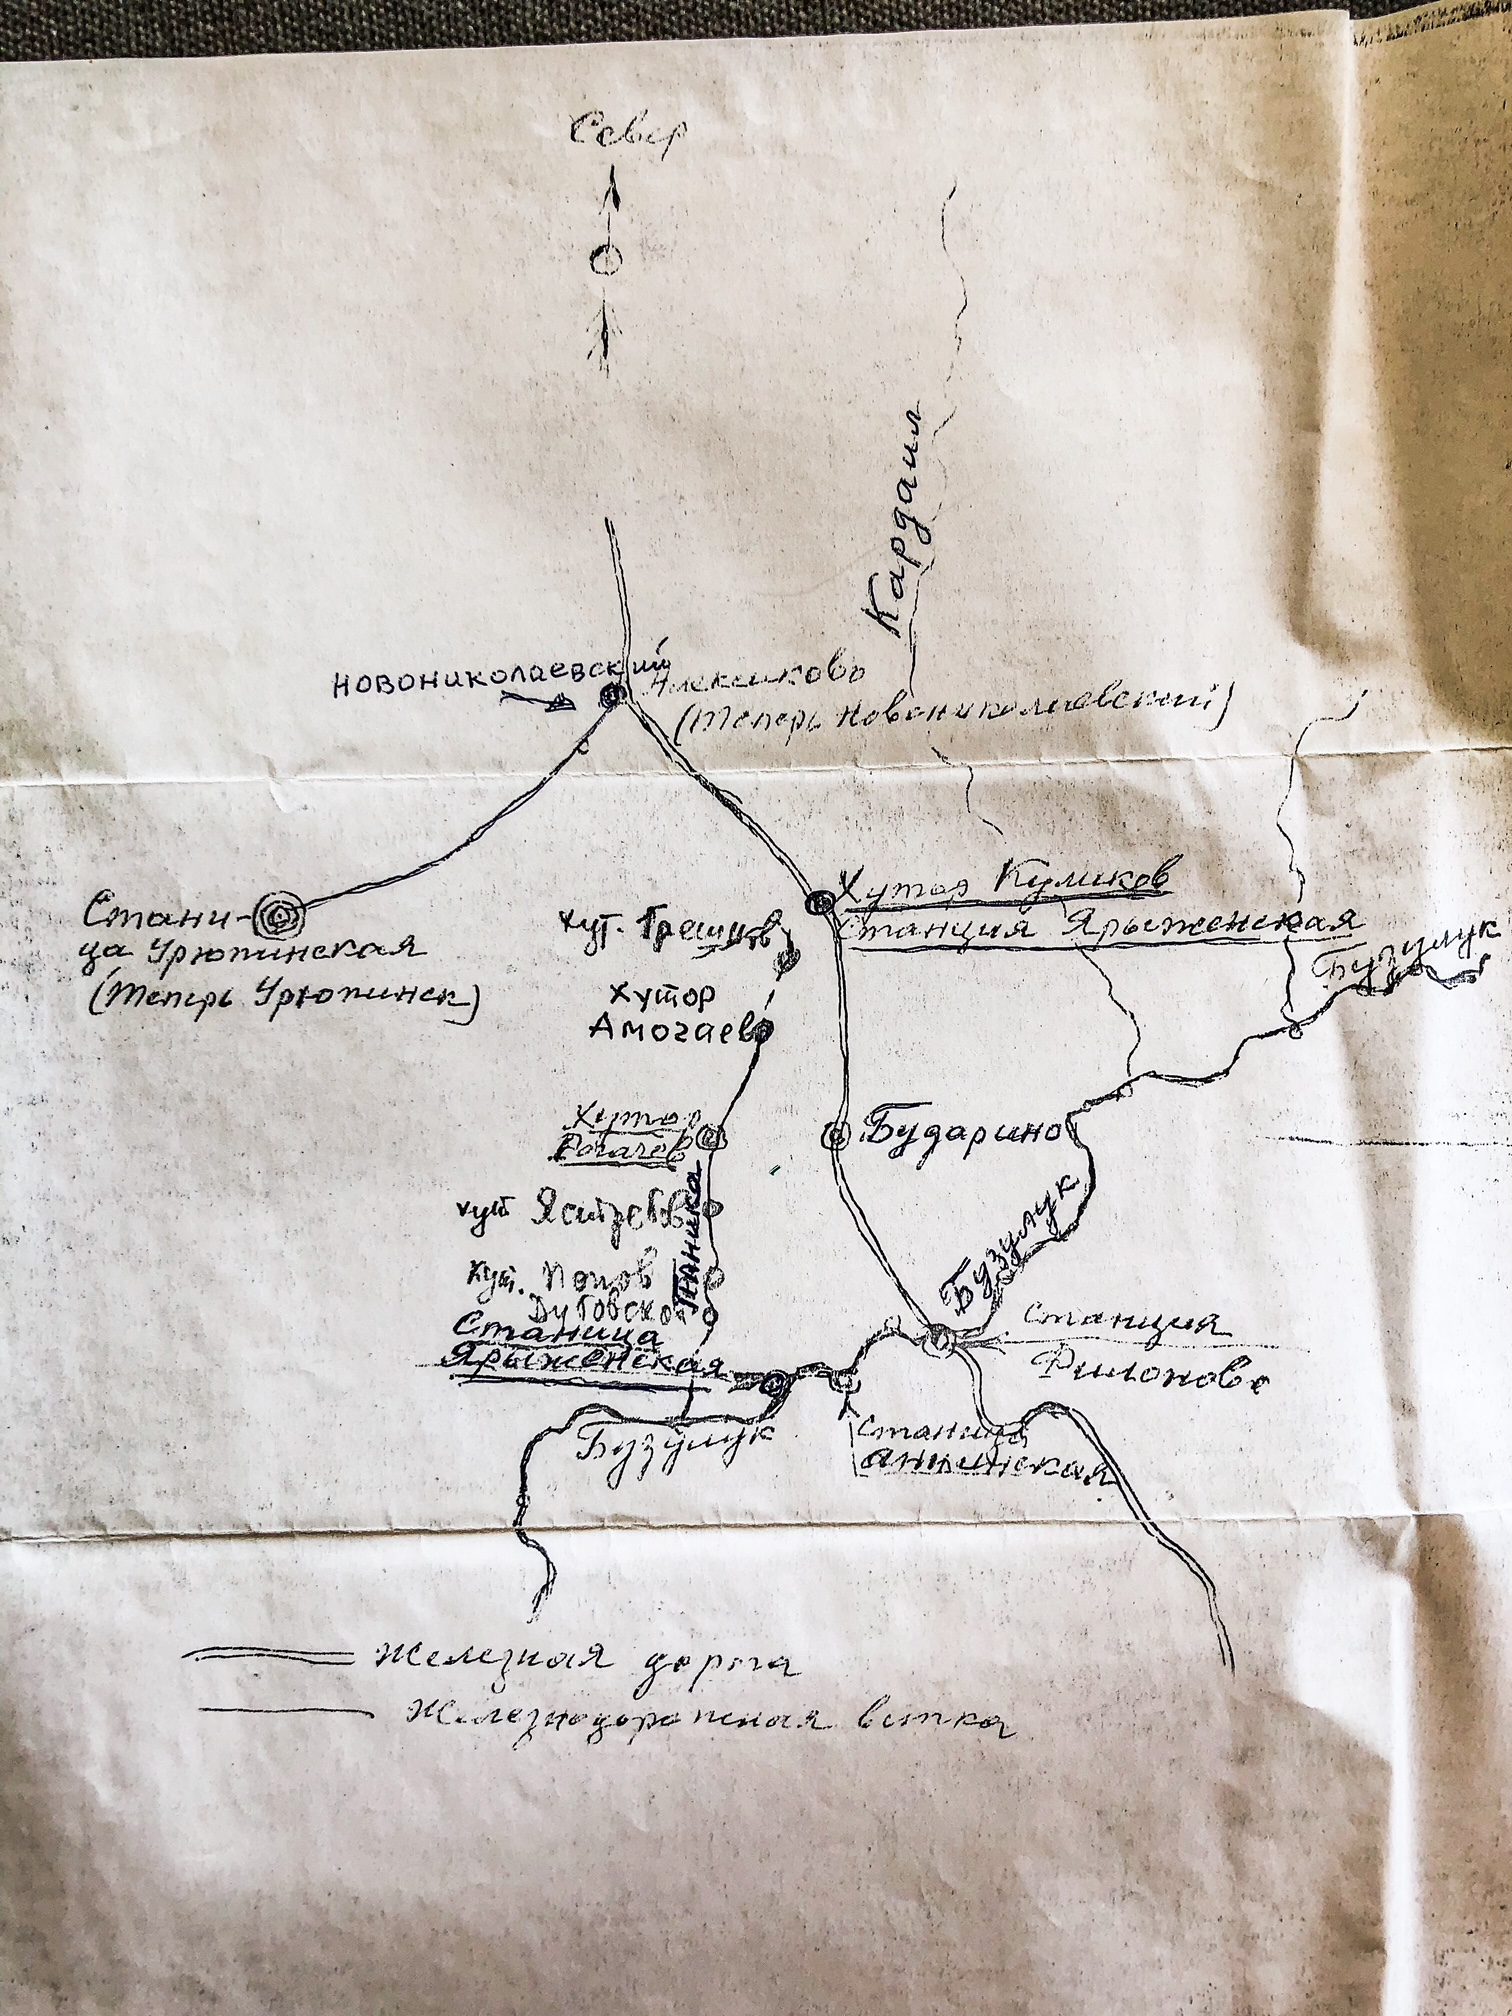 My uncle's hand-drawn map from 1977.